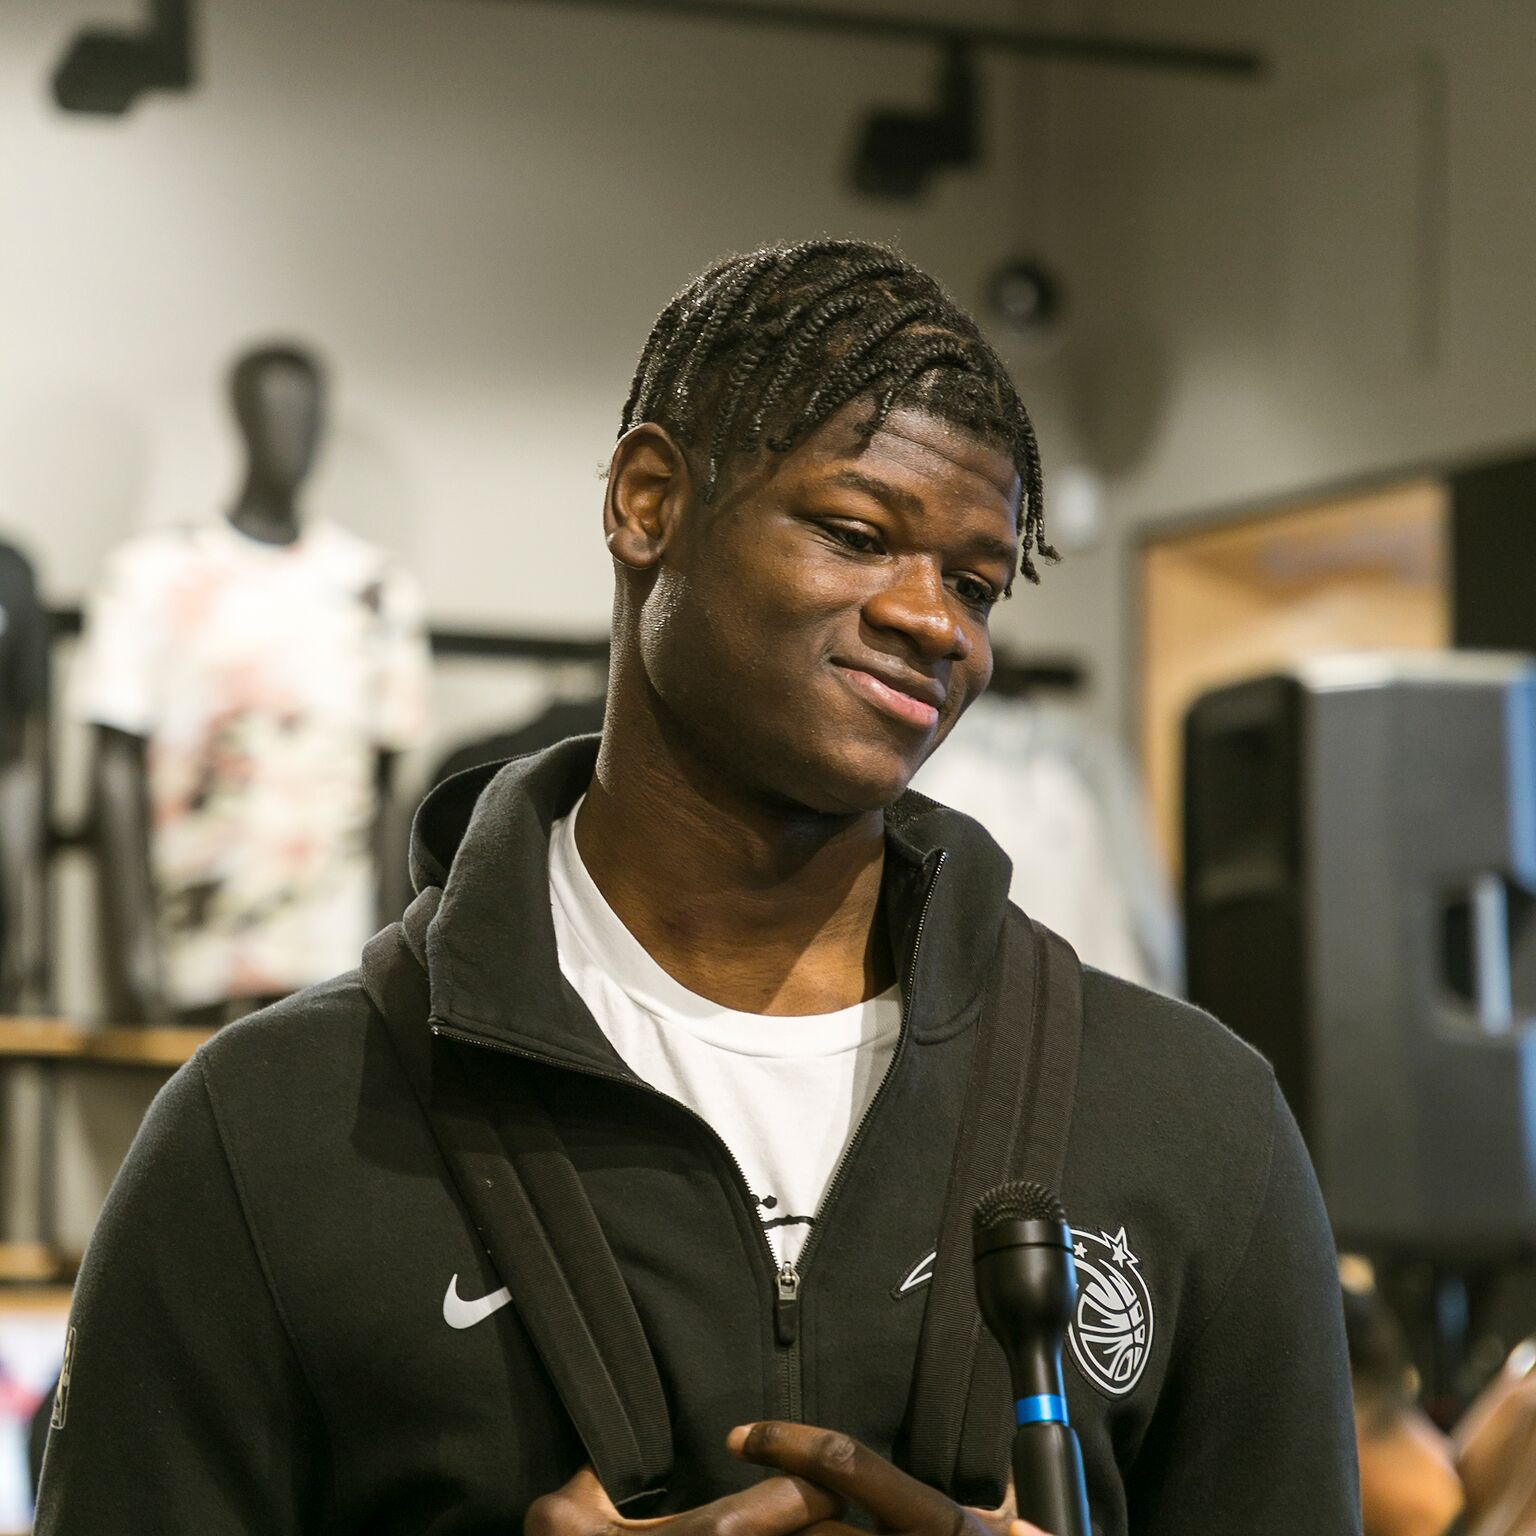 Mohamed Bamba sheck wes interview